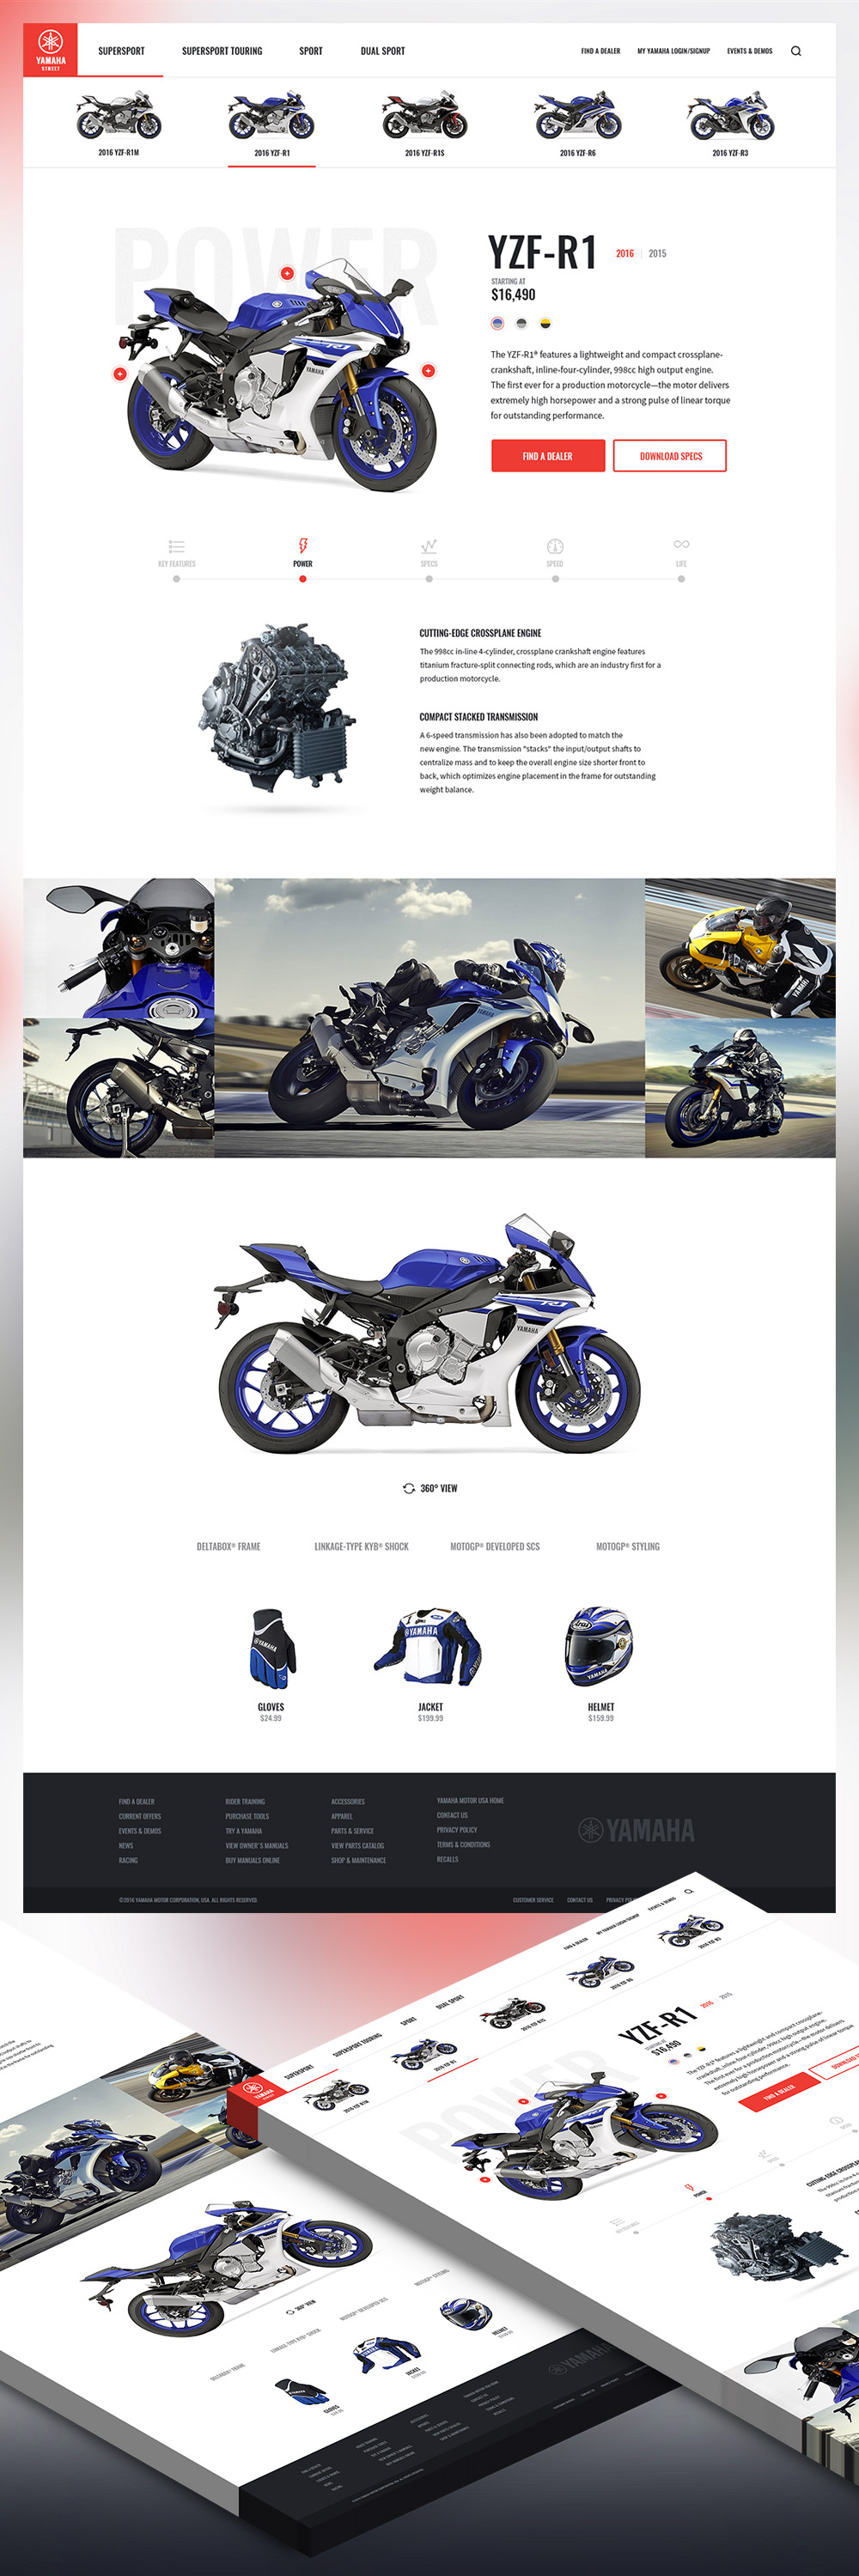 motor bike shop free psd website template download psd. Black Bedroom Furniture Sets. Home Design Ideas